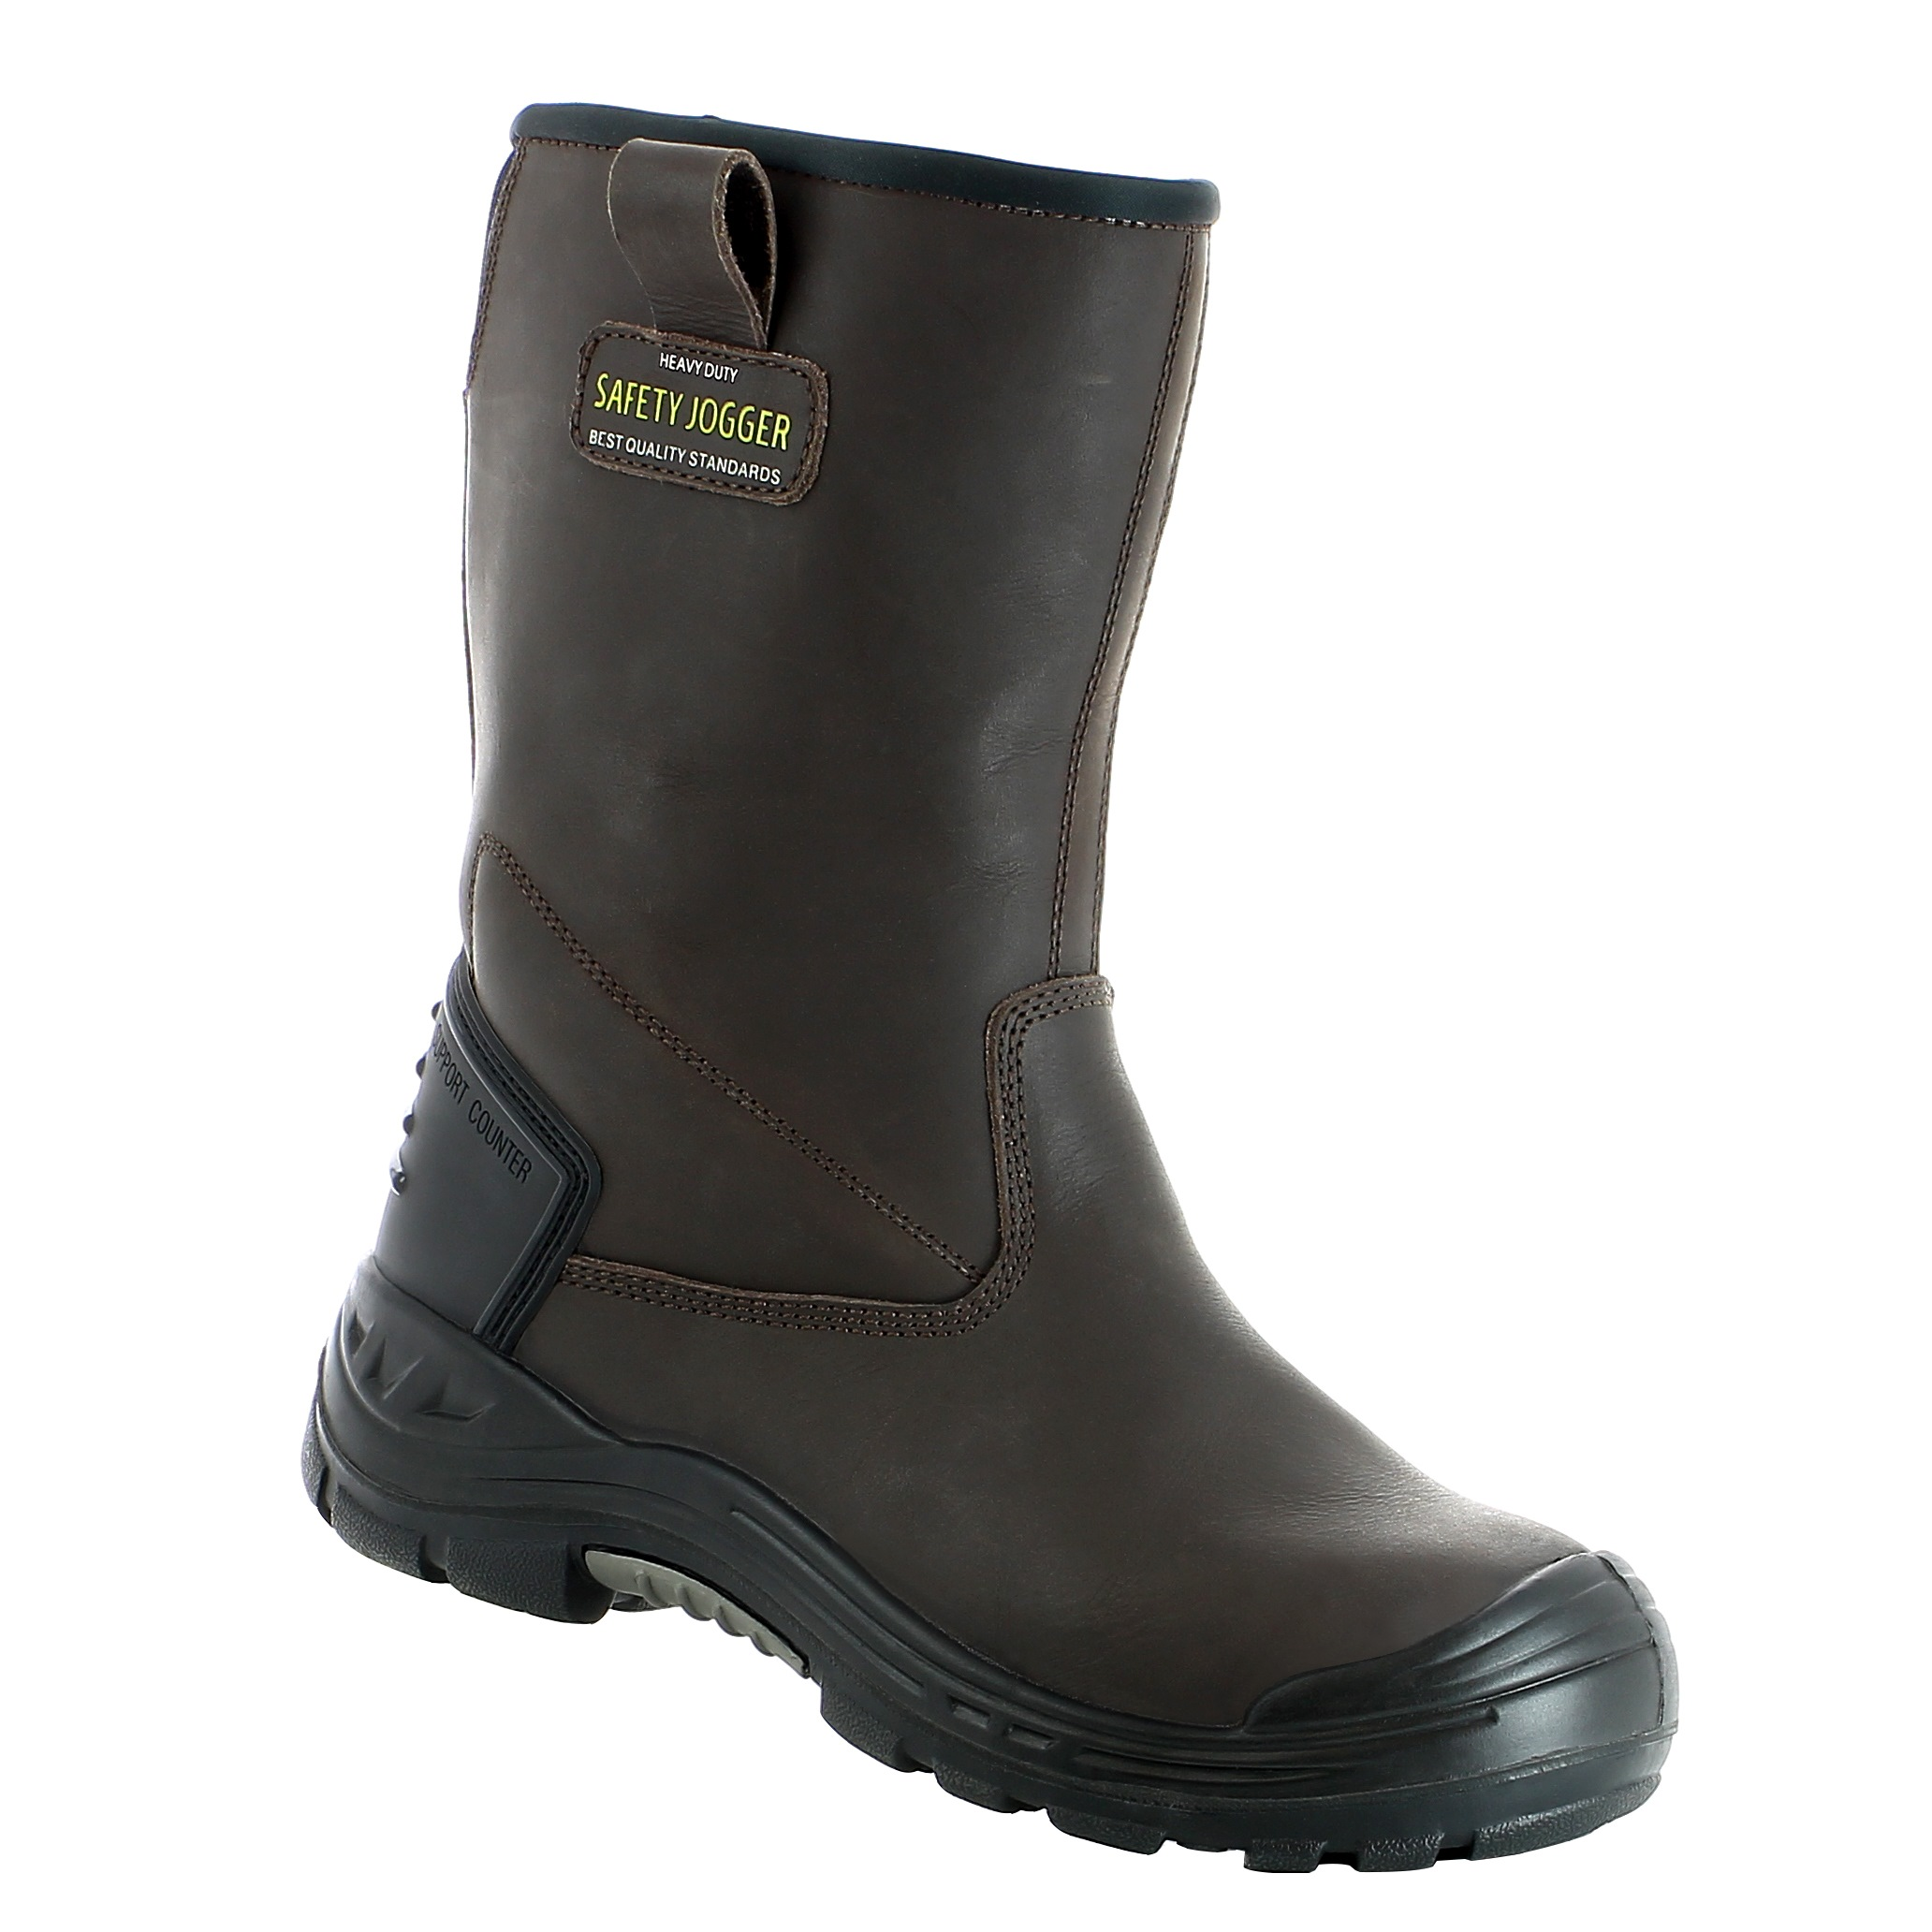 Safety Jogger Boot Boreas S3 Safety Footwear Horme